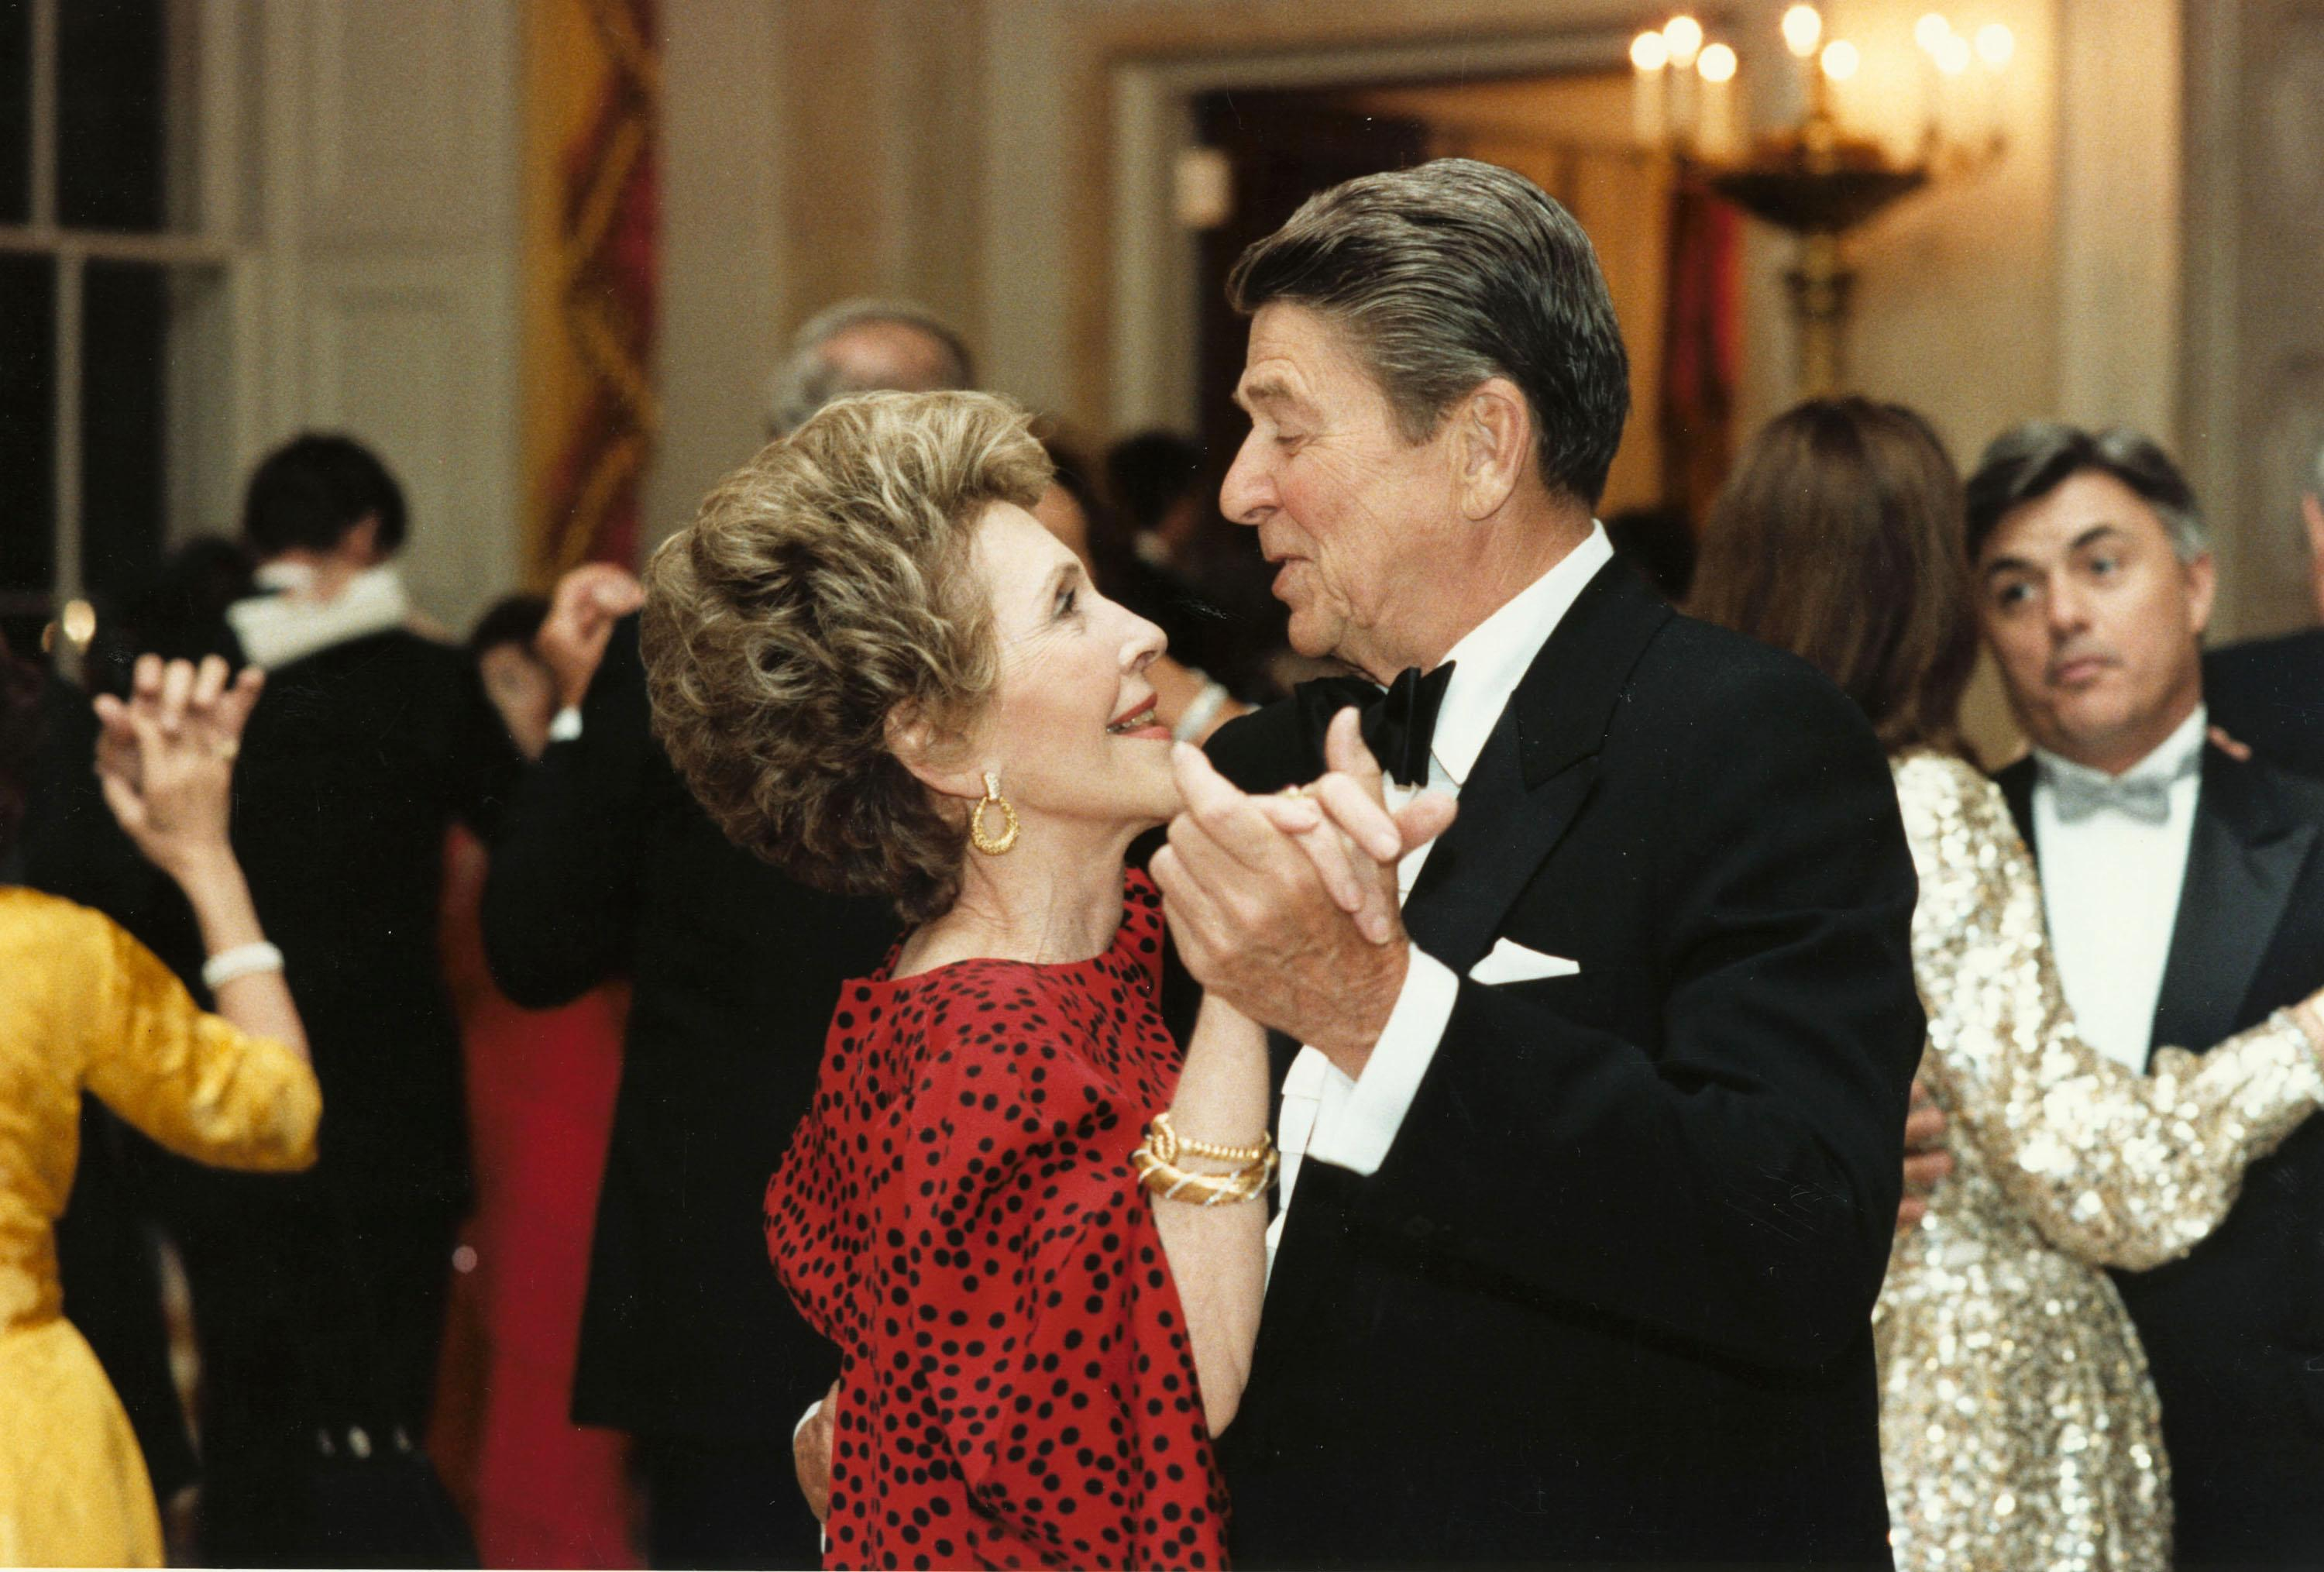 reagan dancing